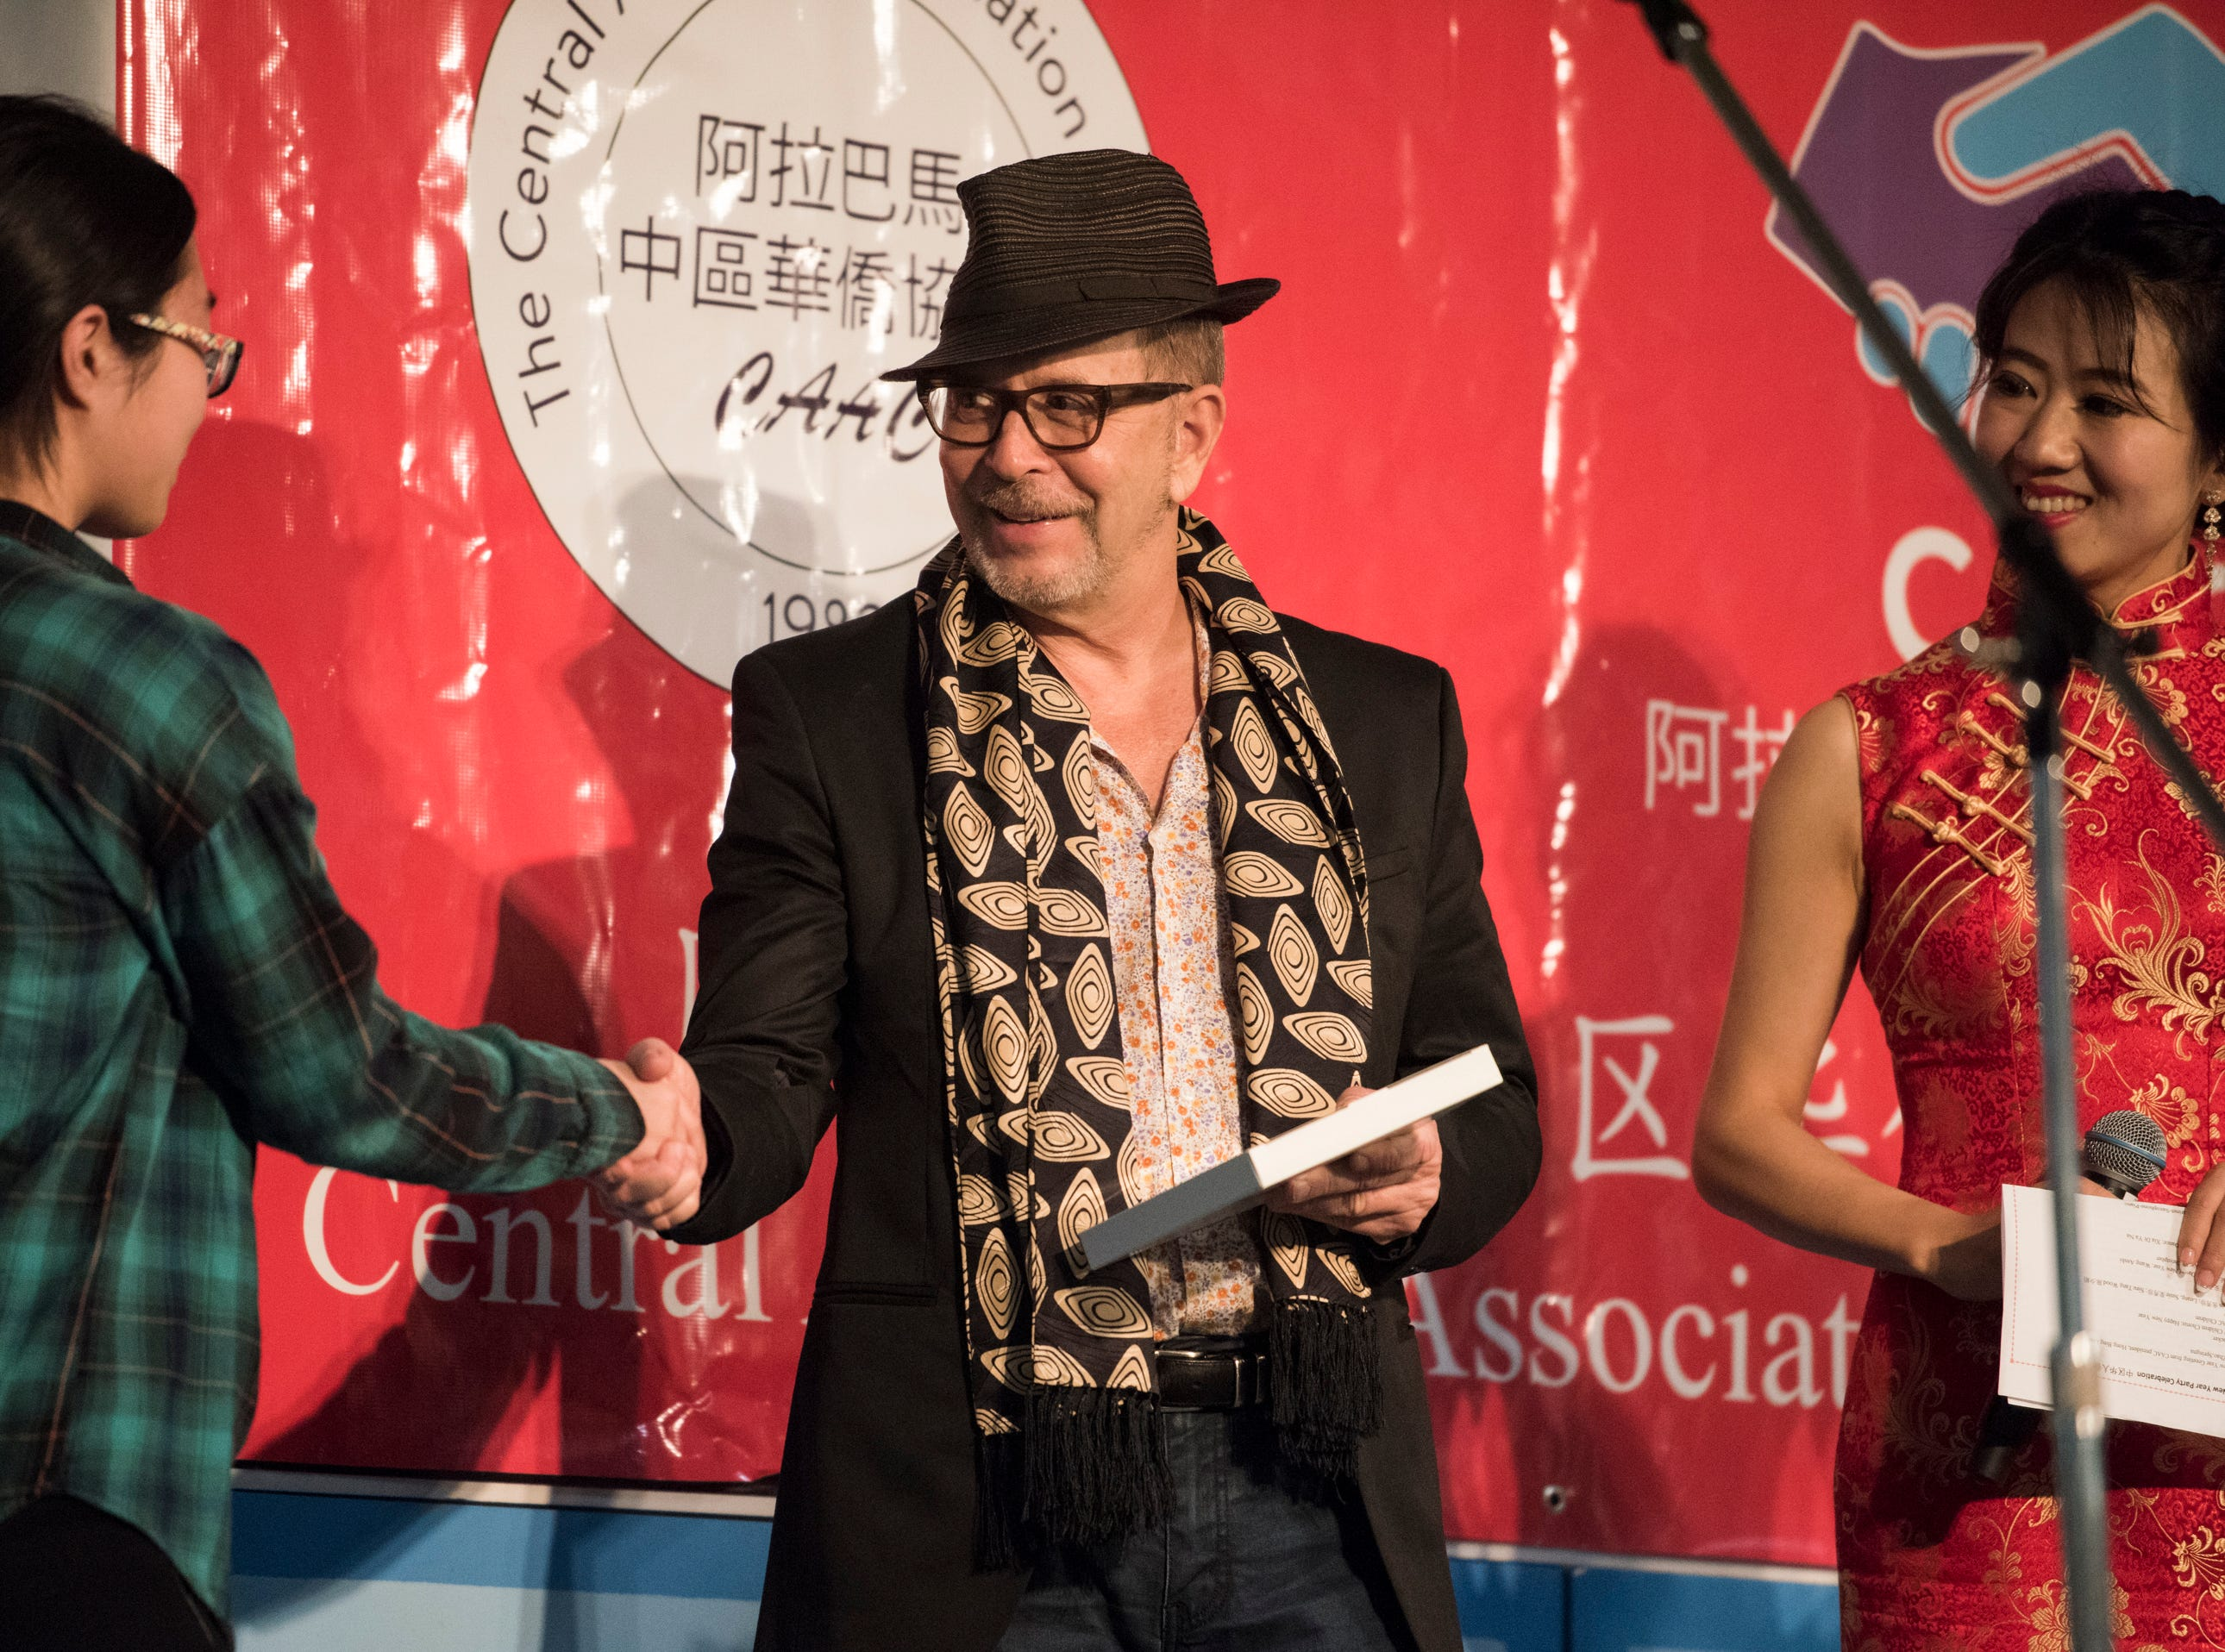 Film editor Barry Alexander Brown presents award as the special guest during the Central Alabama Association of Chinese 2019 Montgomery Chinese New Year festsival at Frazer Church in Montgomery, Ala., on Saturday, Feb. 9, 2019.